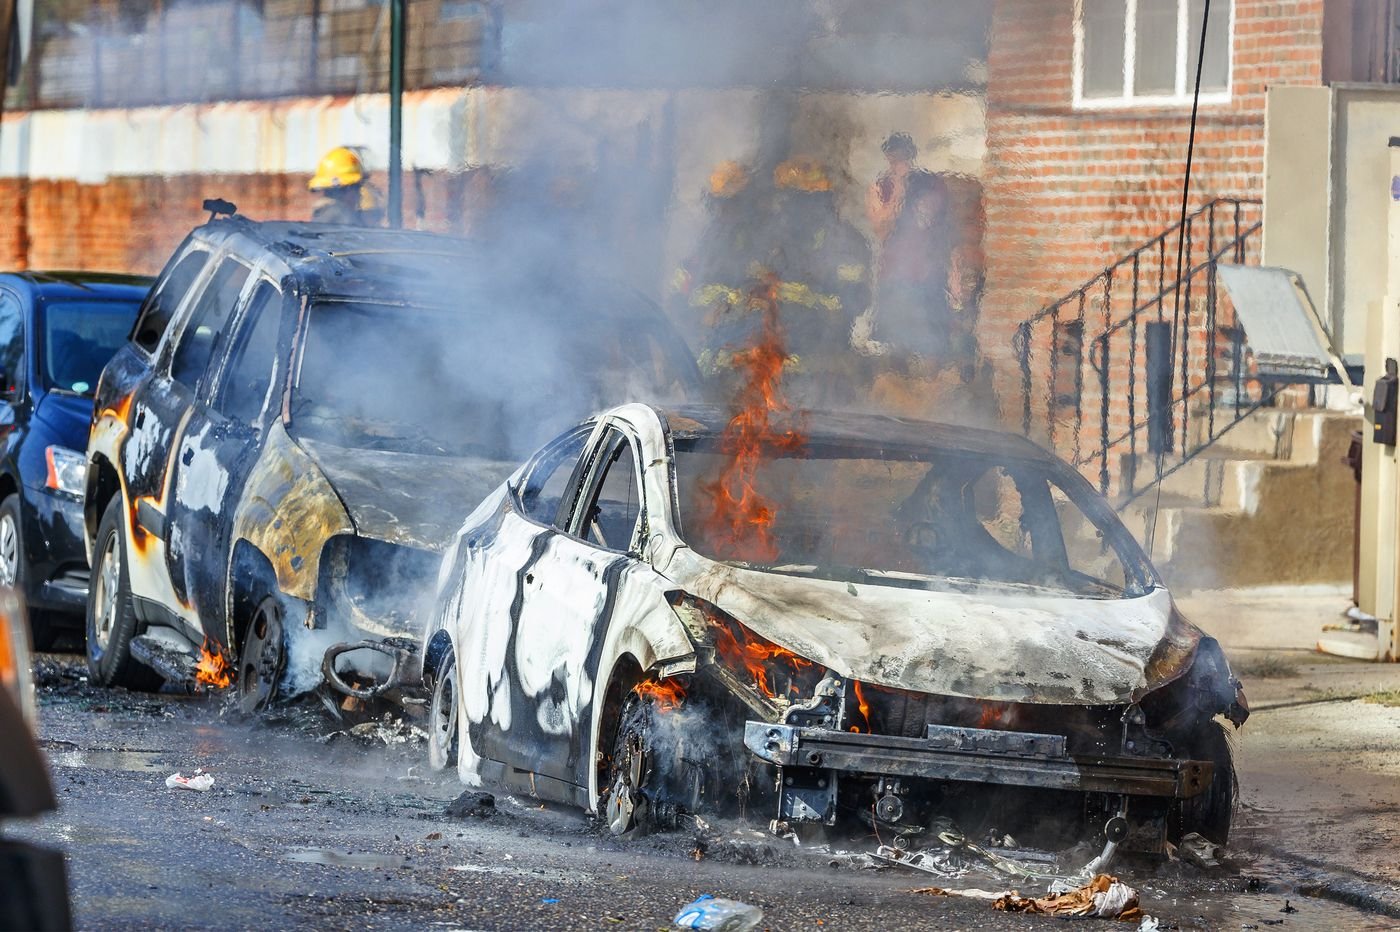 Cars set ablaze by downed power line in Francisville; power restored to 700 customers